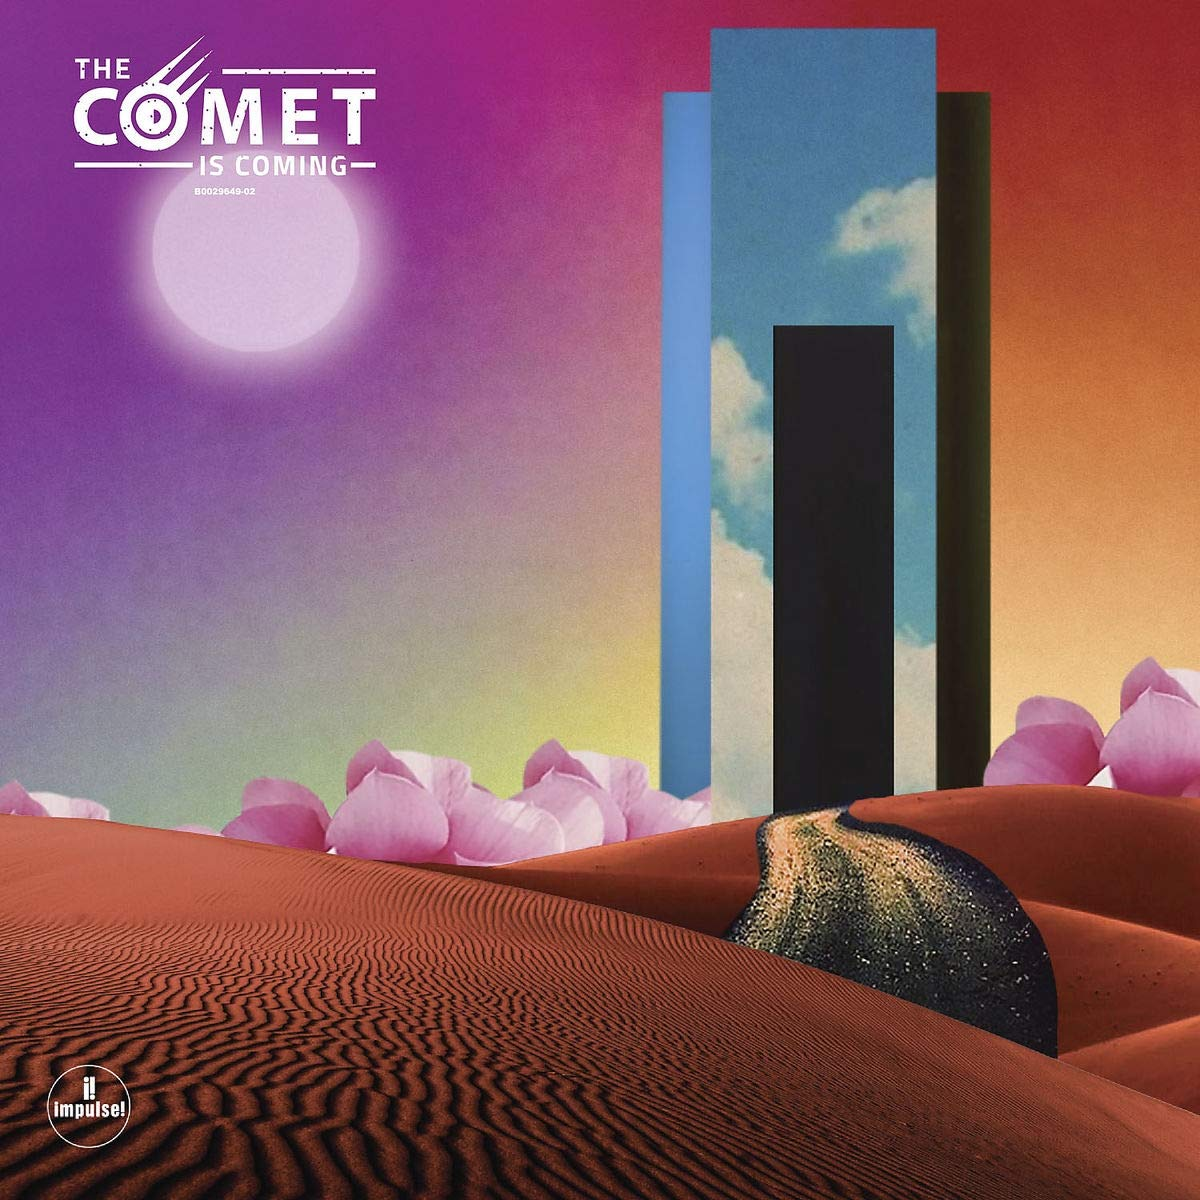 Episode 409: The Comet Is Coming's 'Trust In The Lifeforce Of The